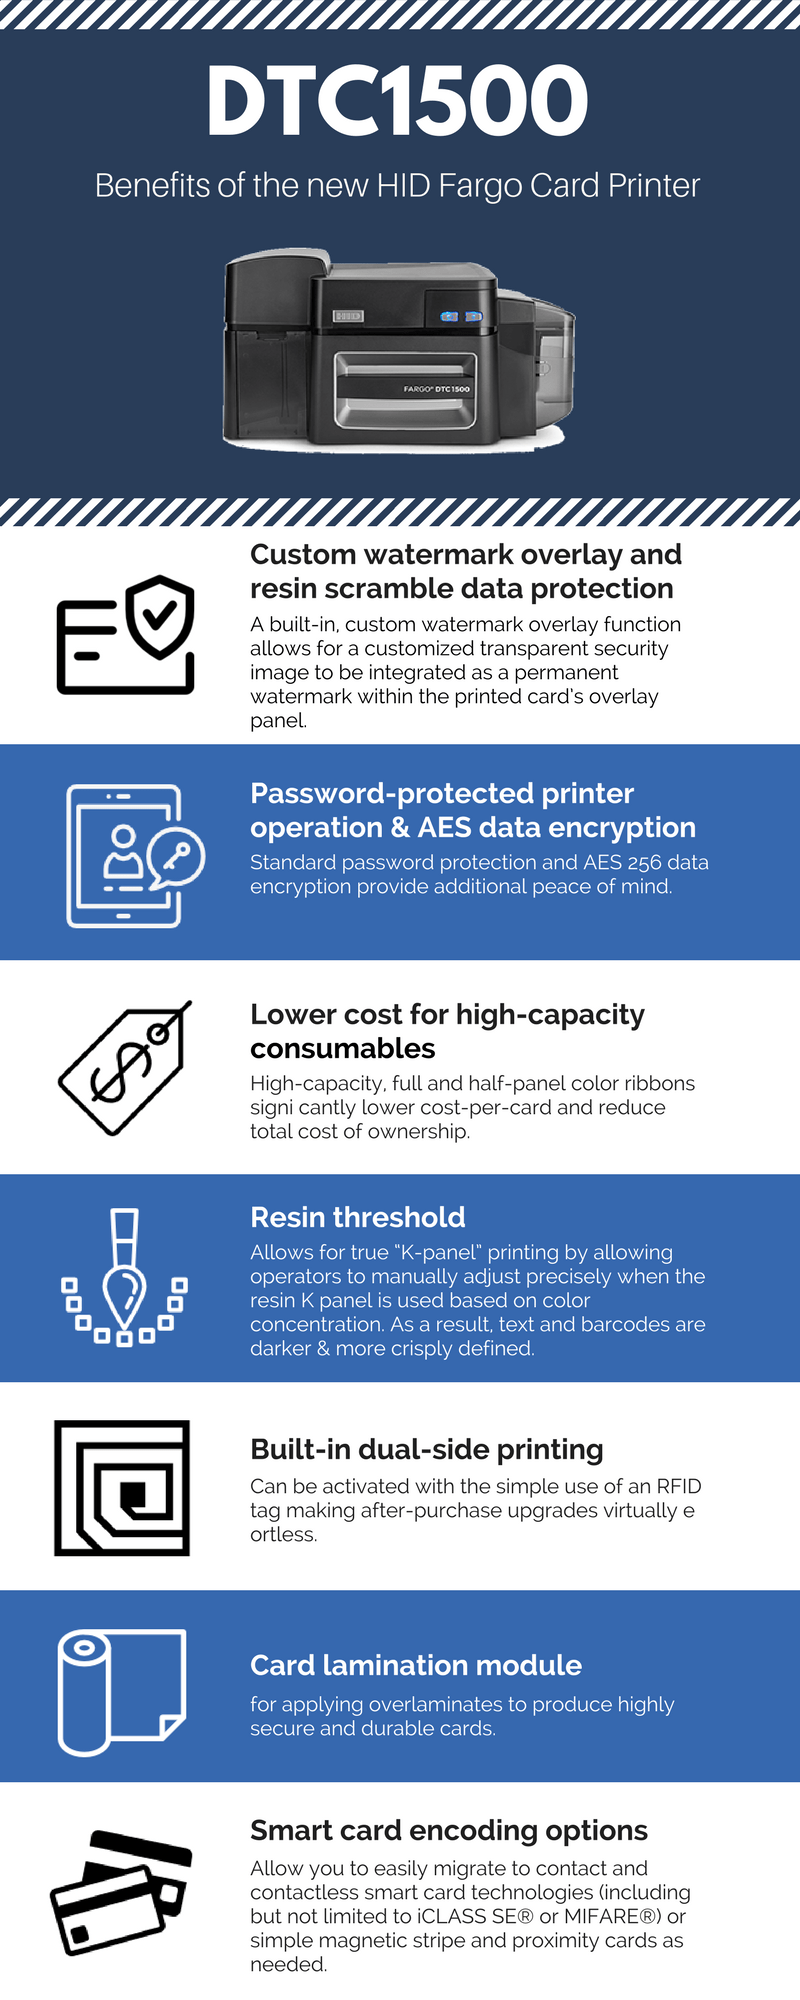 Infographic - Introducing the new DTC1500 card printer